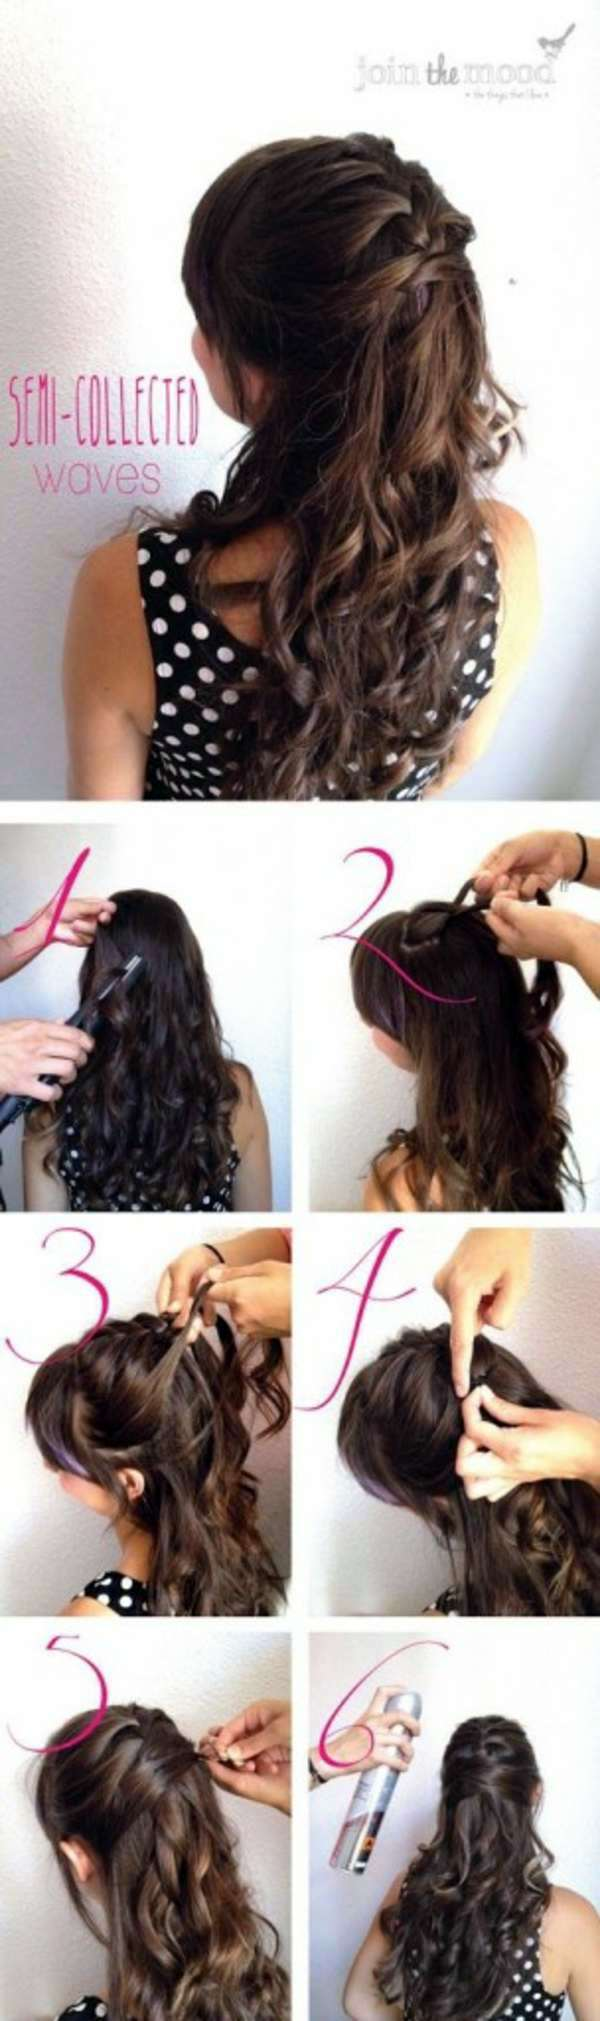 Quick and easy going diy trendy hairstyles interior design ideas waves with braided belt quick and easy going diy trendy hairstyles solutioingenieria Choice Image